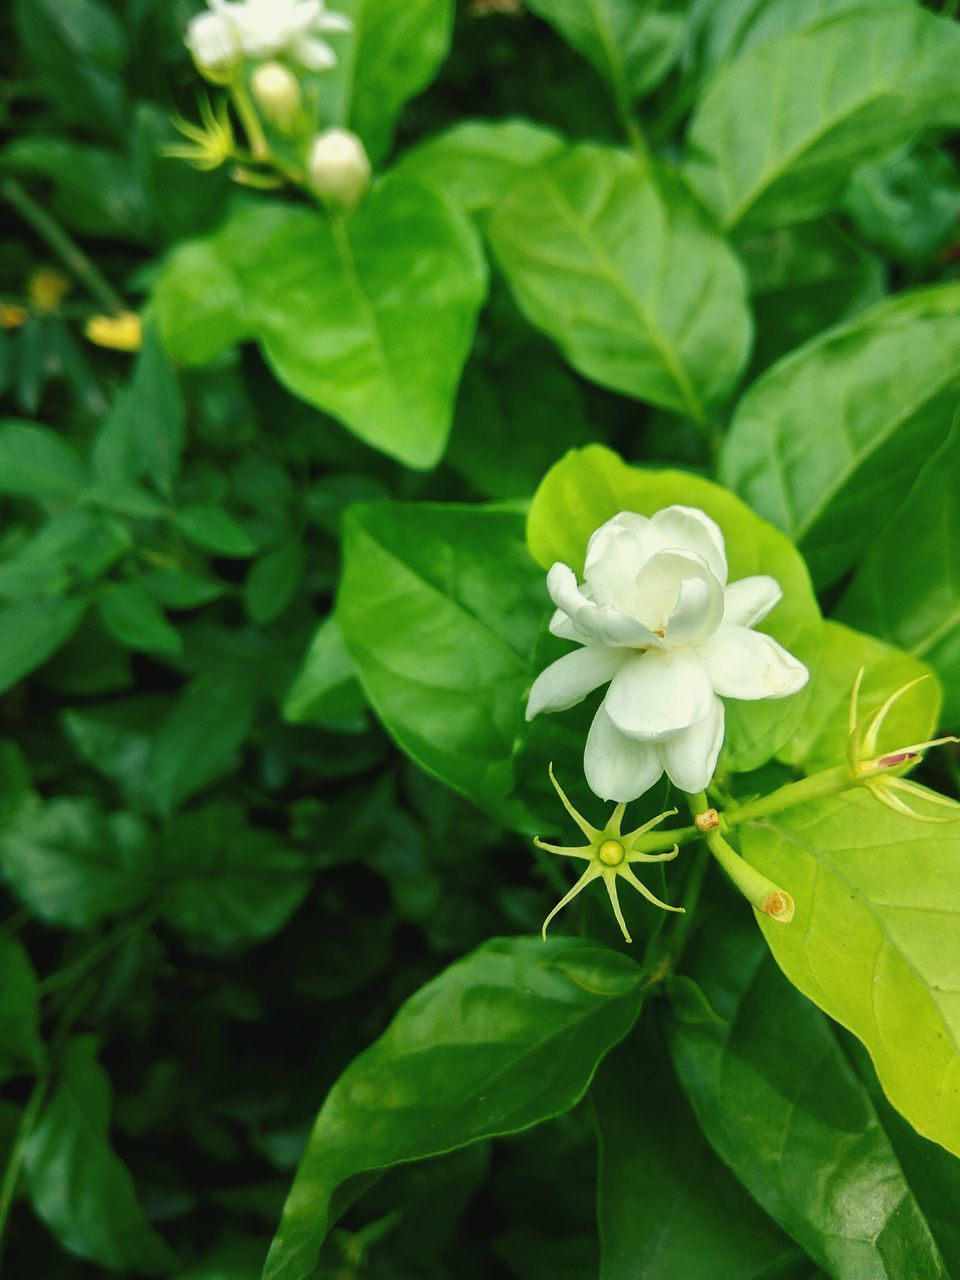 flower, leaf, green color, plant, petal, nature, growth, beauty in nature, white color, fragility, freshness, flower head, blooming, no people, day, outdoors, close-up, periwinkle